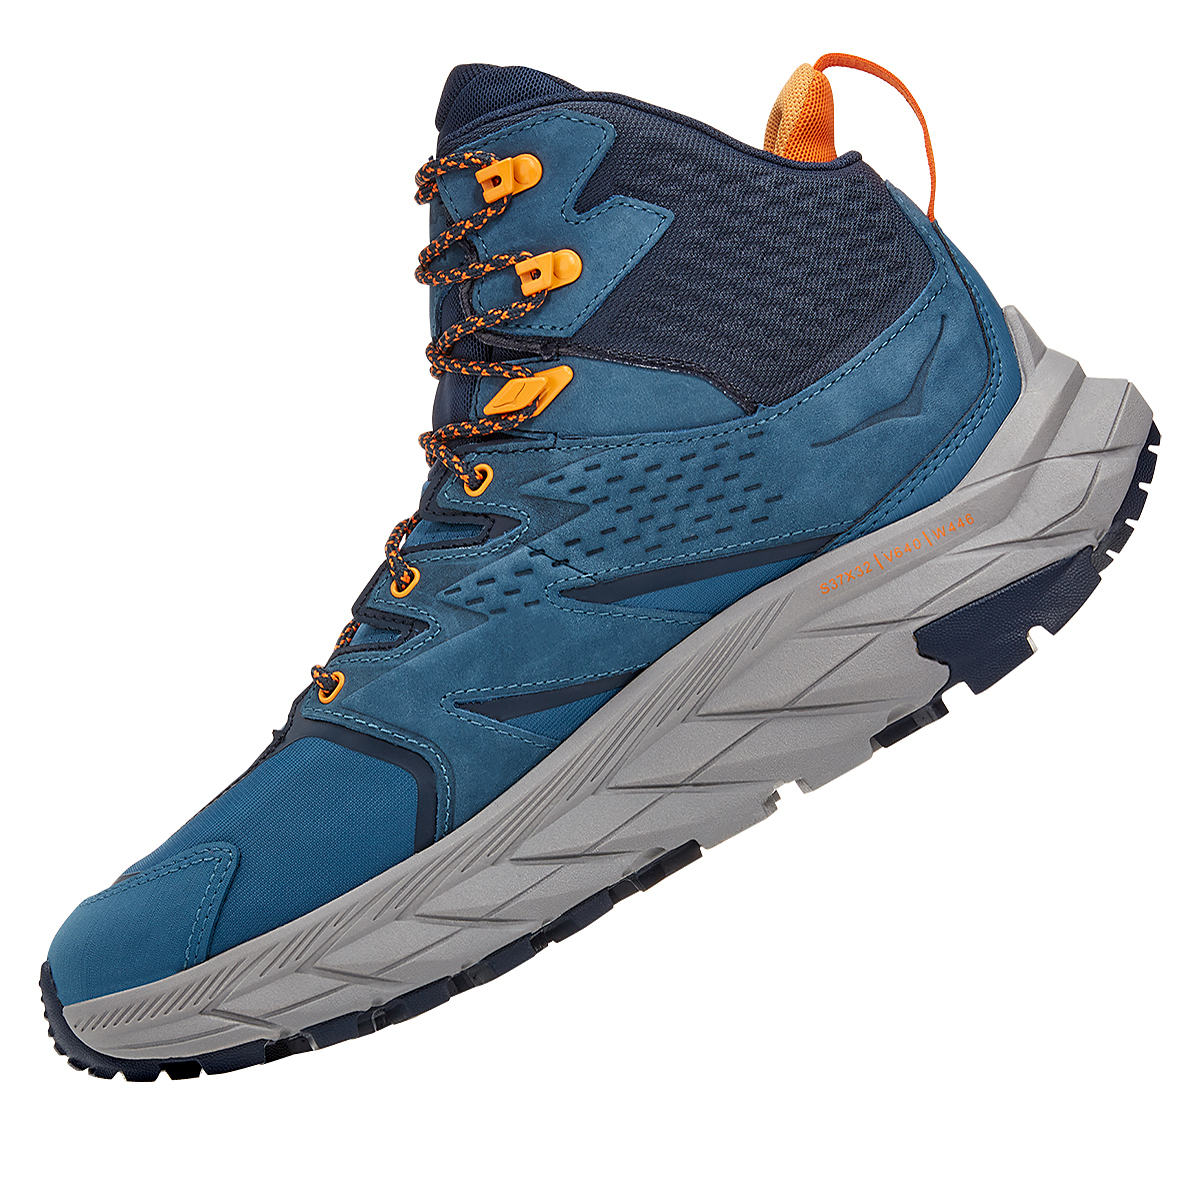 Men's Hoka One One Anacapa Mid Gore-Tex Trail Running Shoe - Color: Real Teal/Outer Space - Size: 7 - Width: Regular, Real Teal/Outer Space, large, image 4